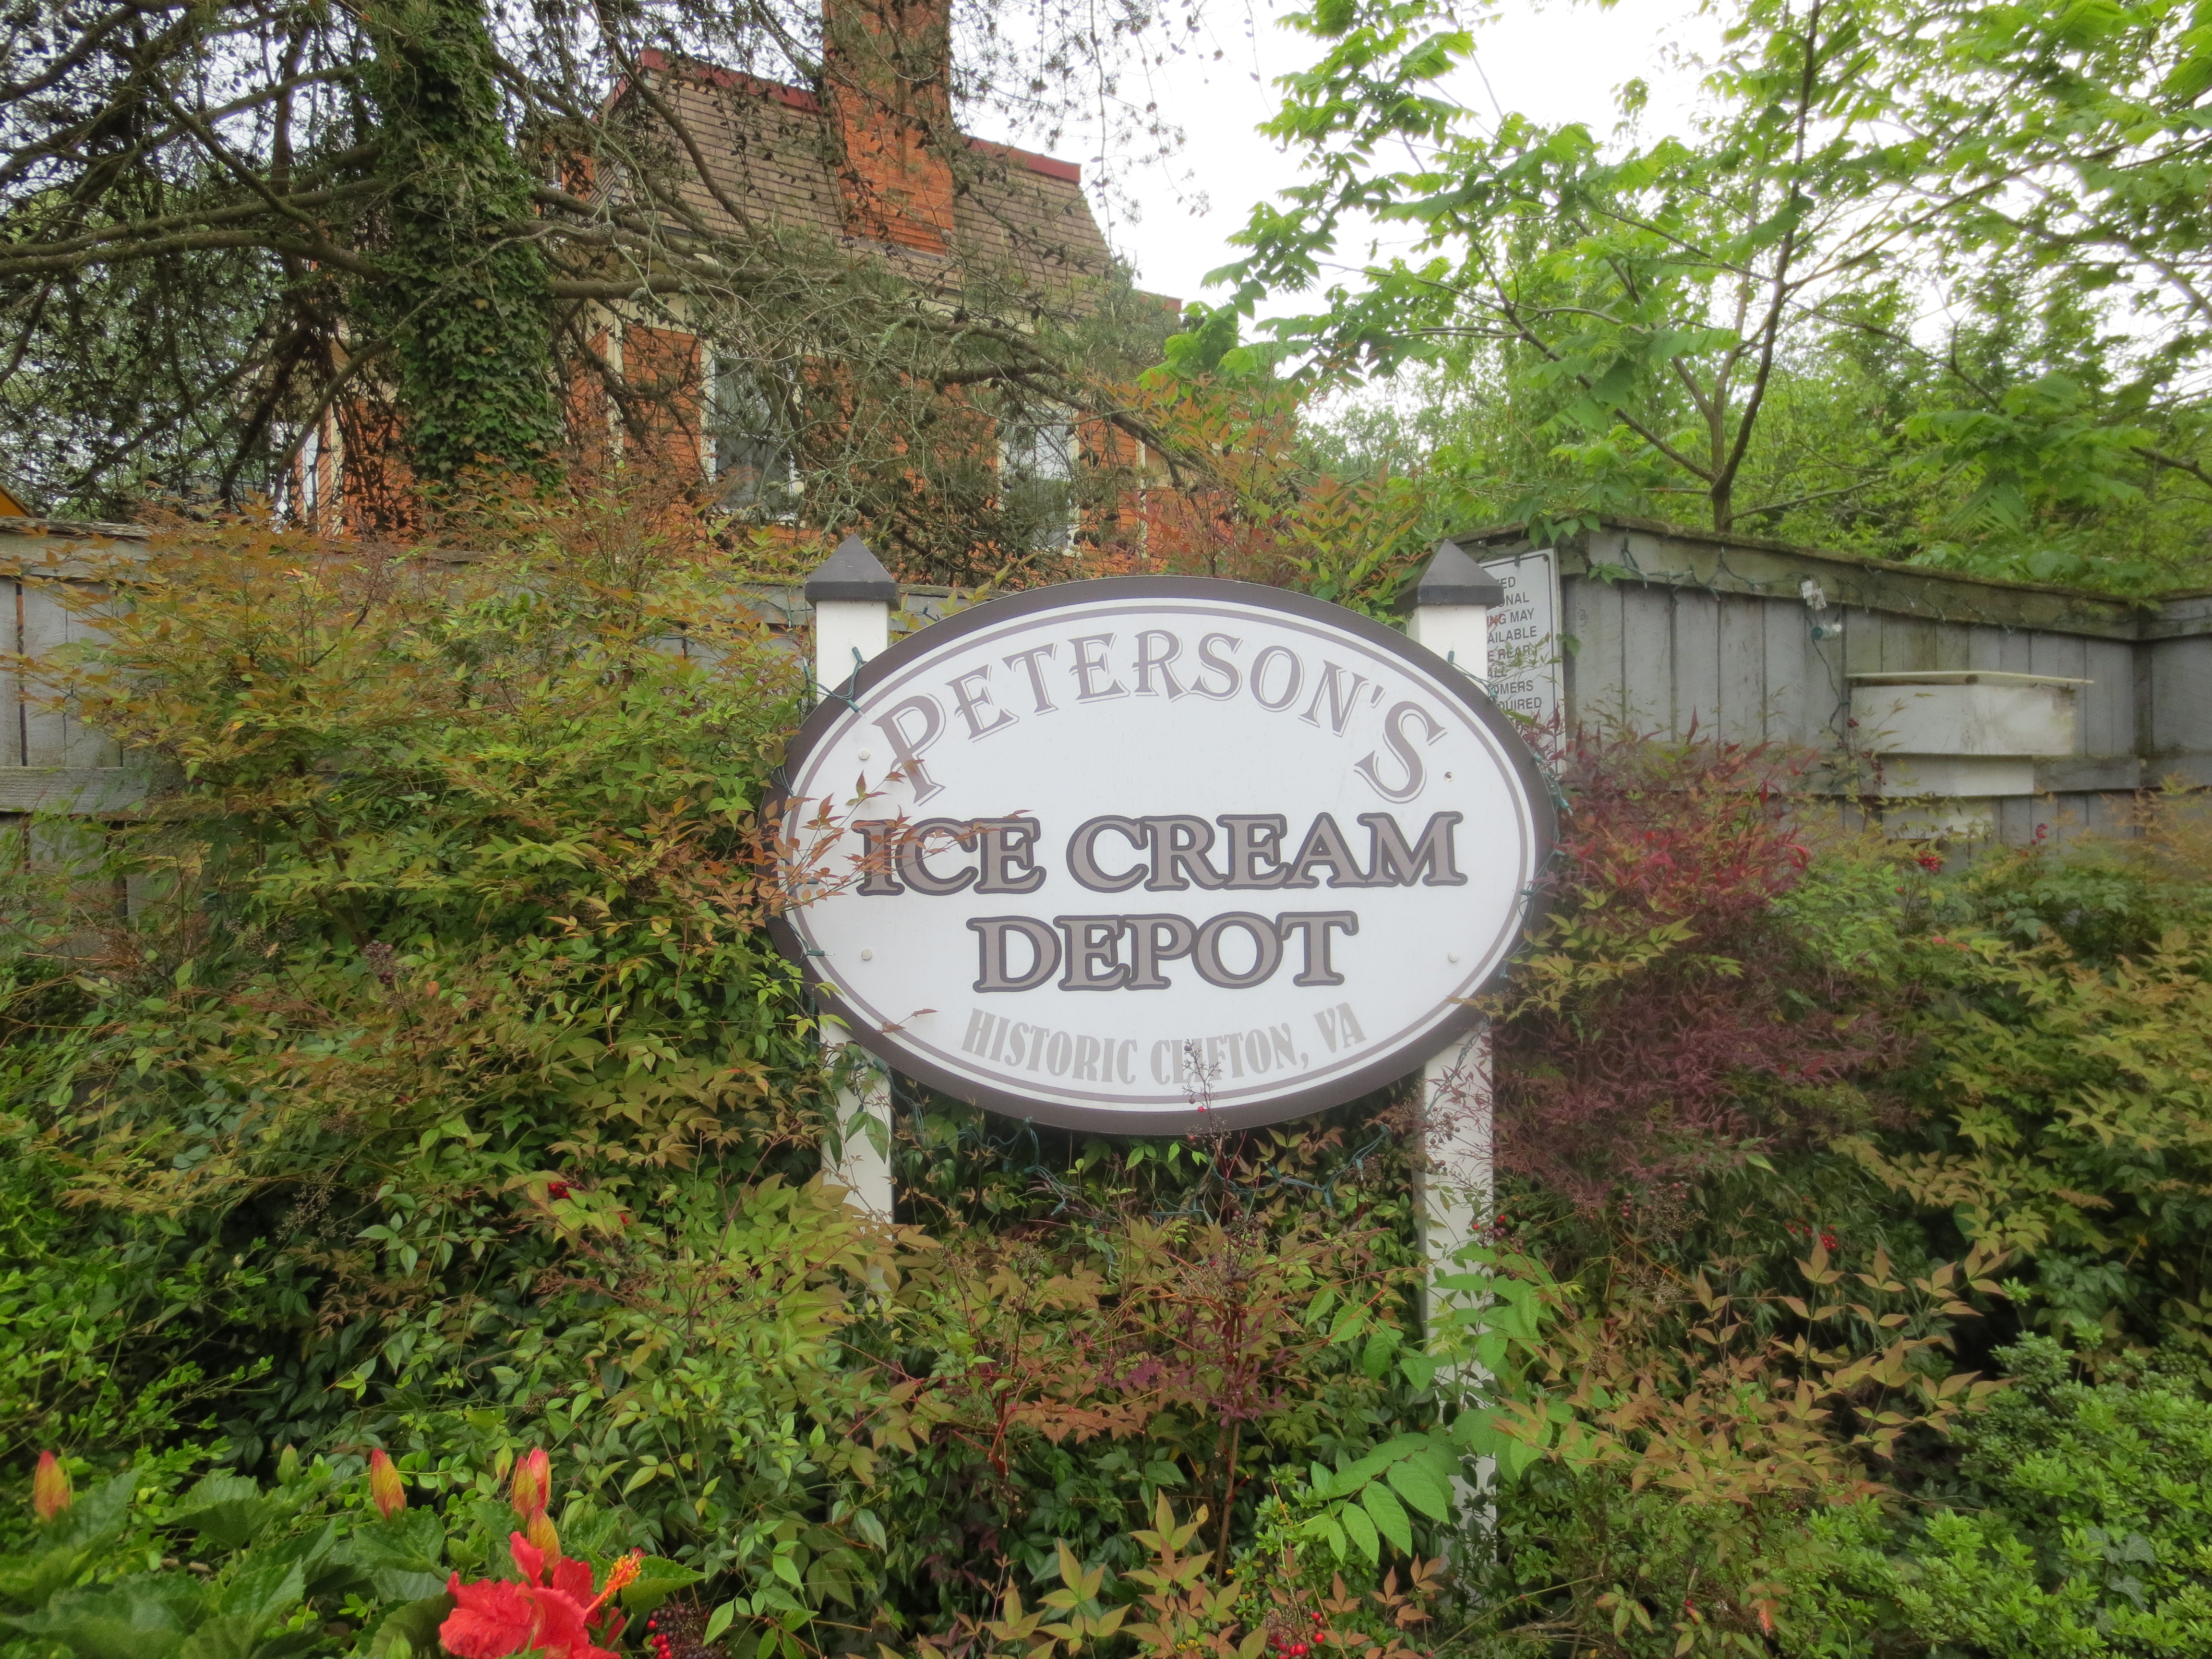 Peterson's Ice Cream Depot in Clifton, Virginia